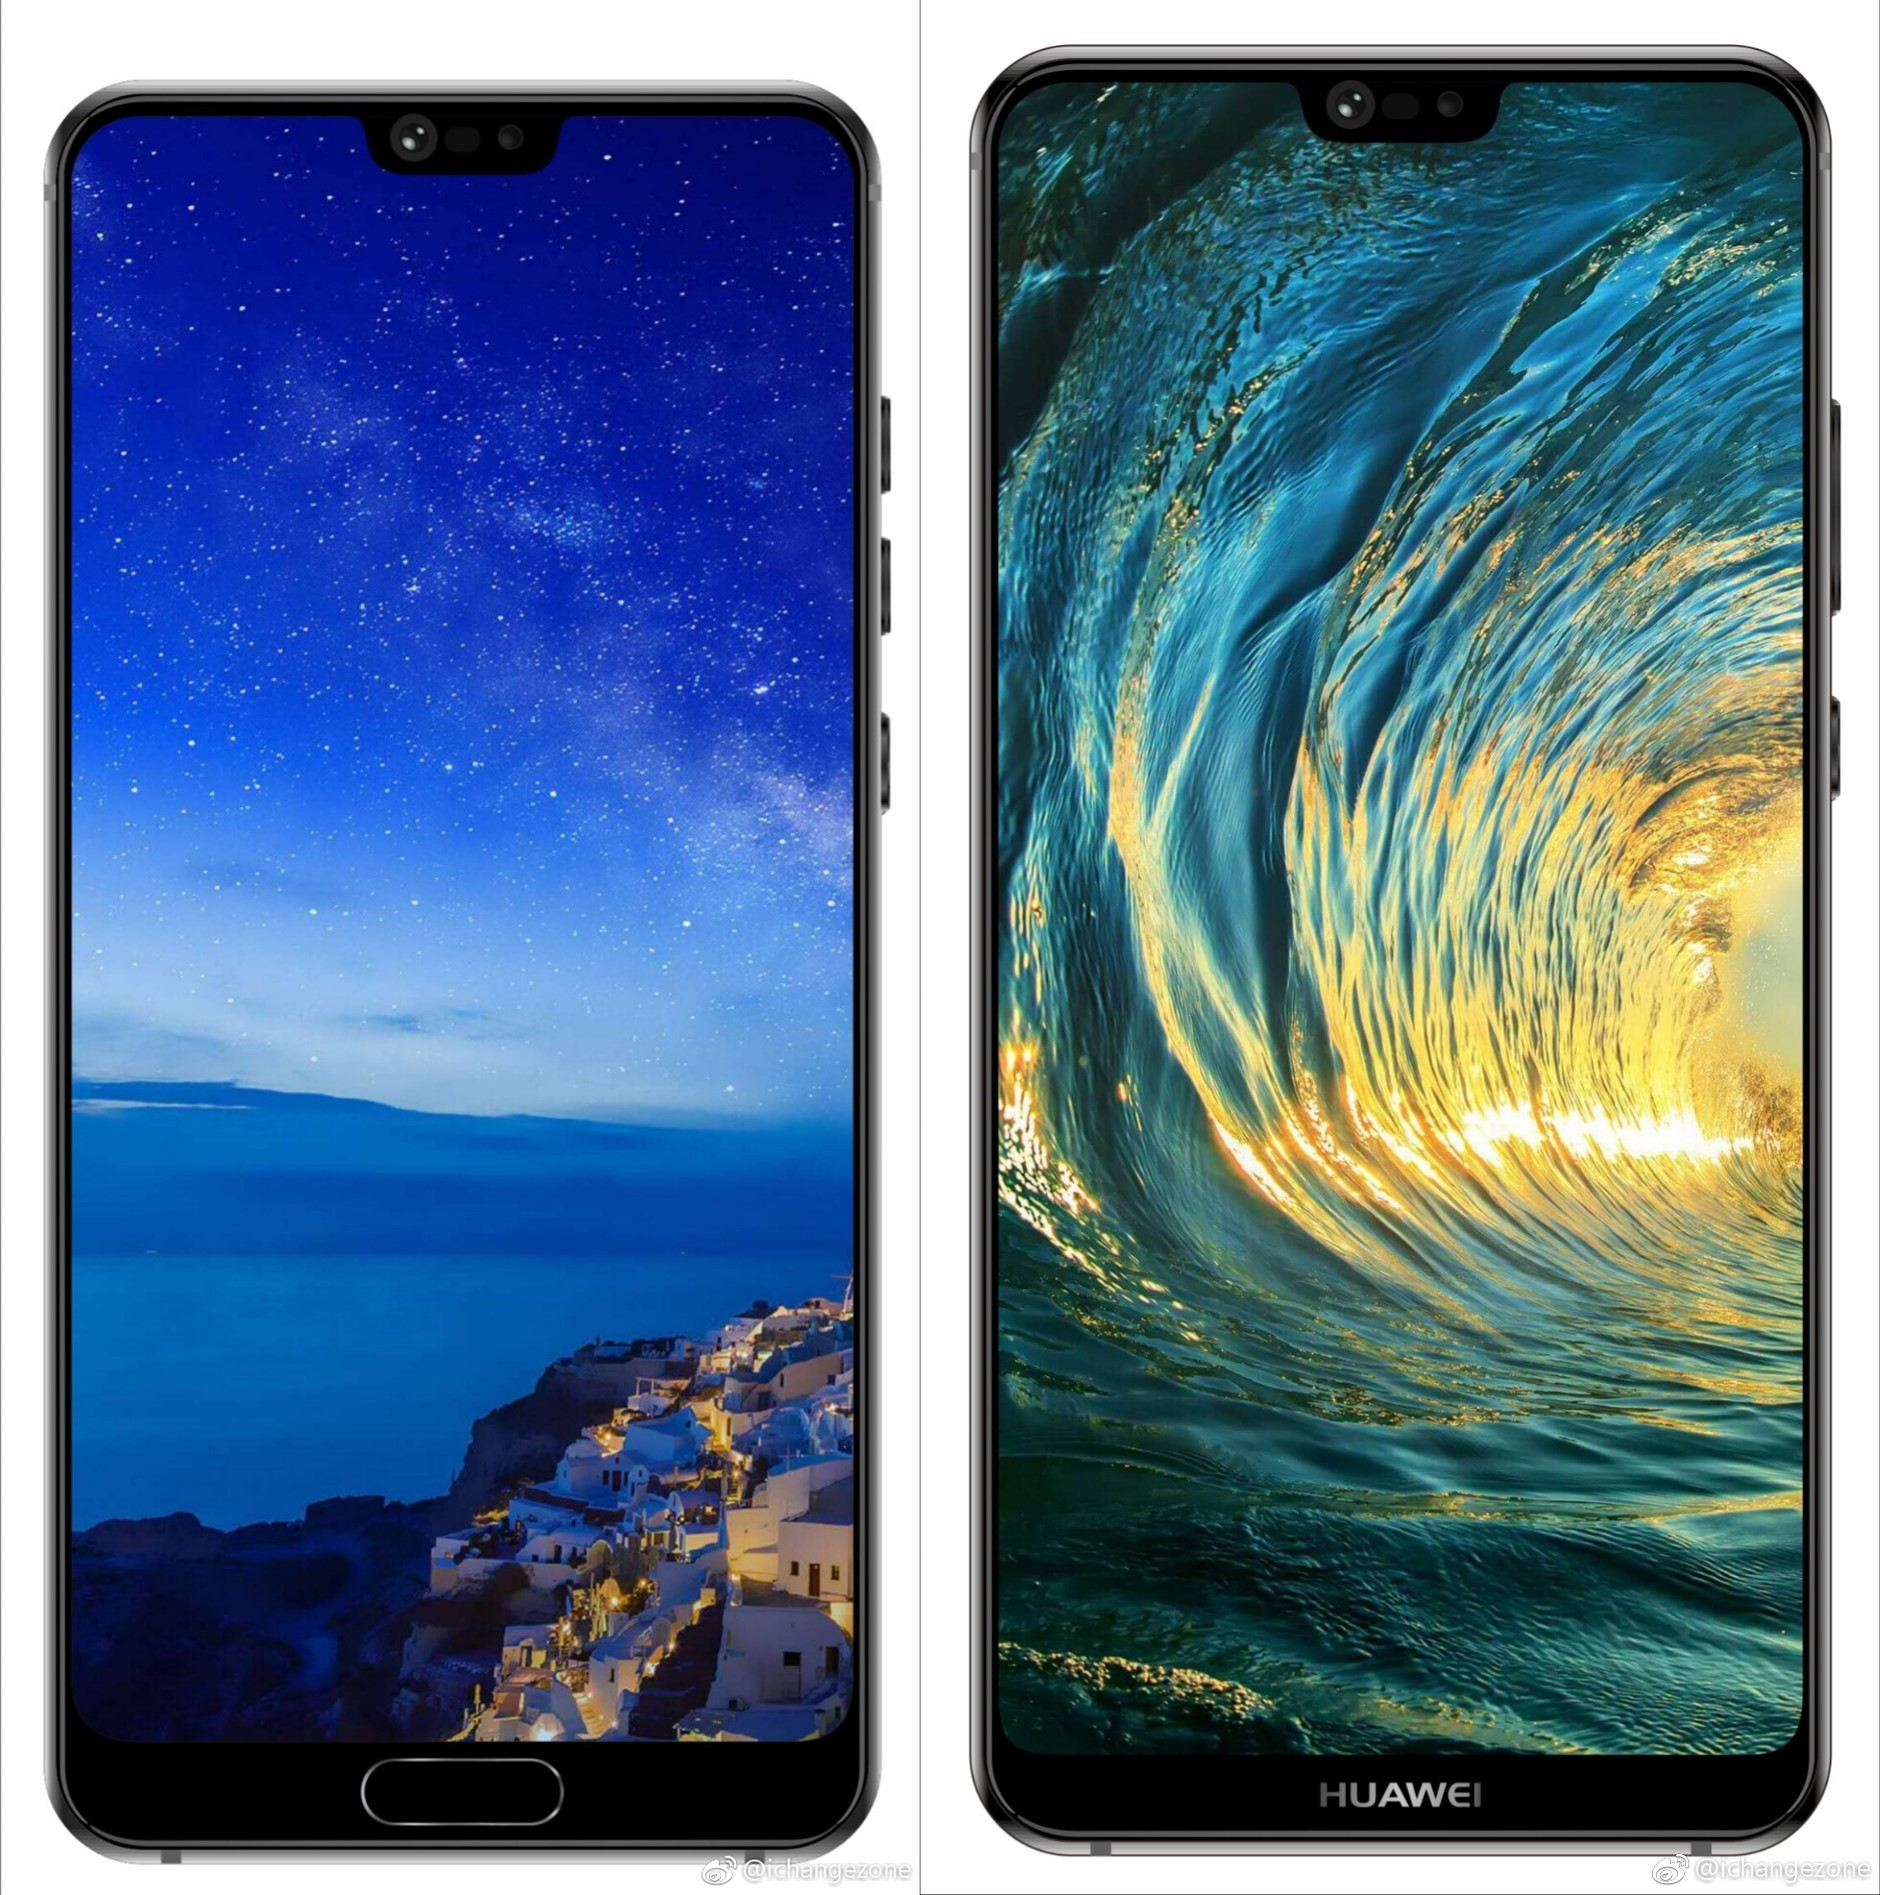 Vodafone Spain spills the beans about the Huawei P20 Lite